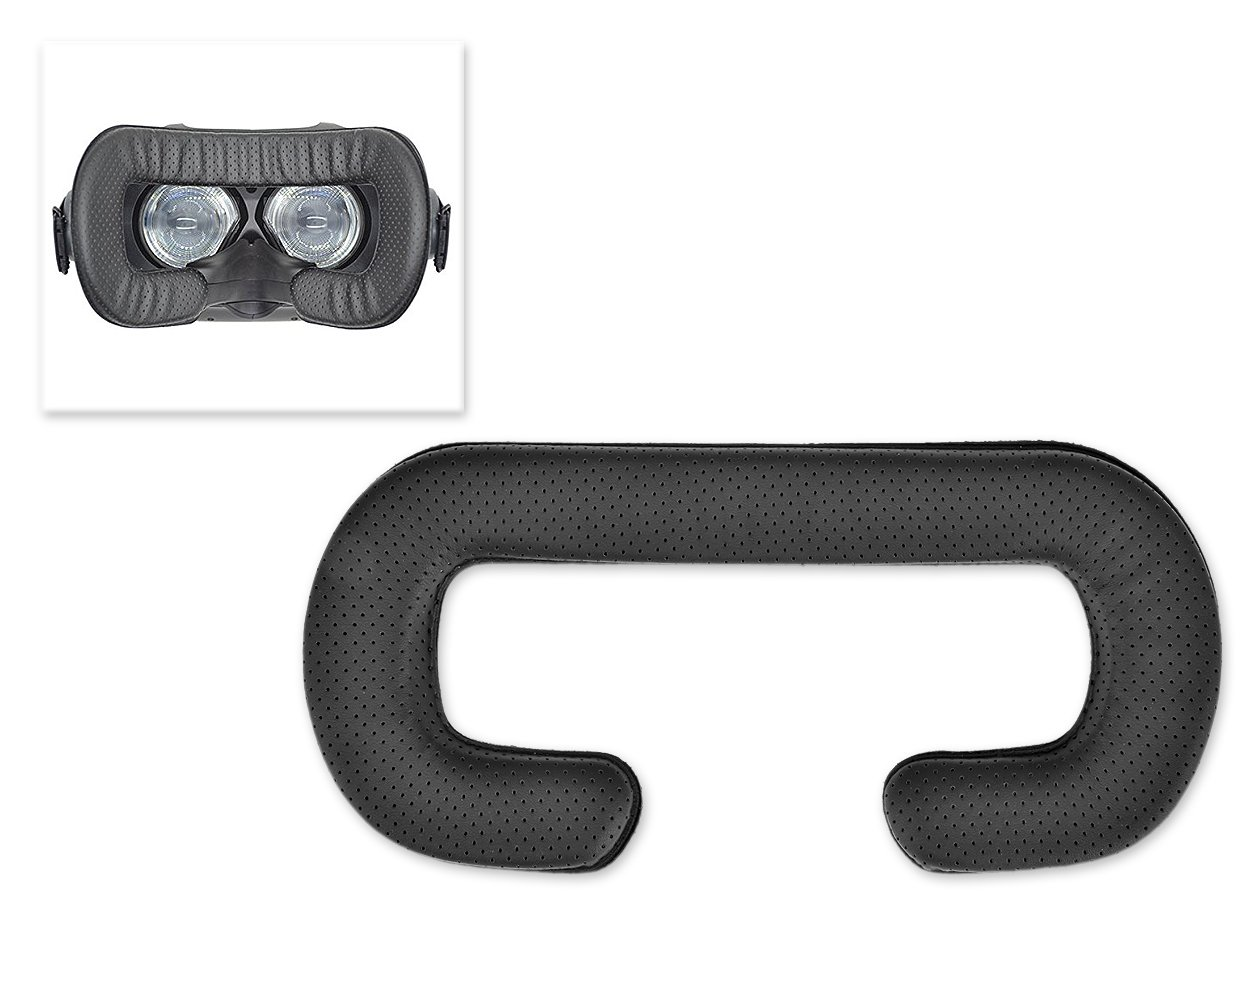 2 pcs VR Cover Acer Windows Mixed Reality Waterproof Foam Replacement 12mm